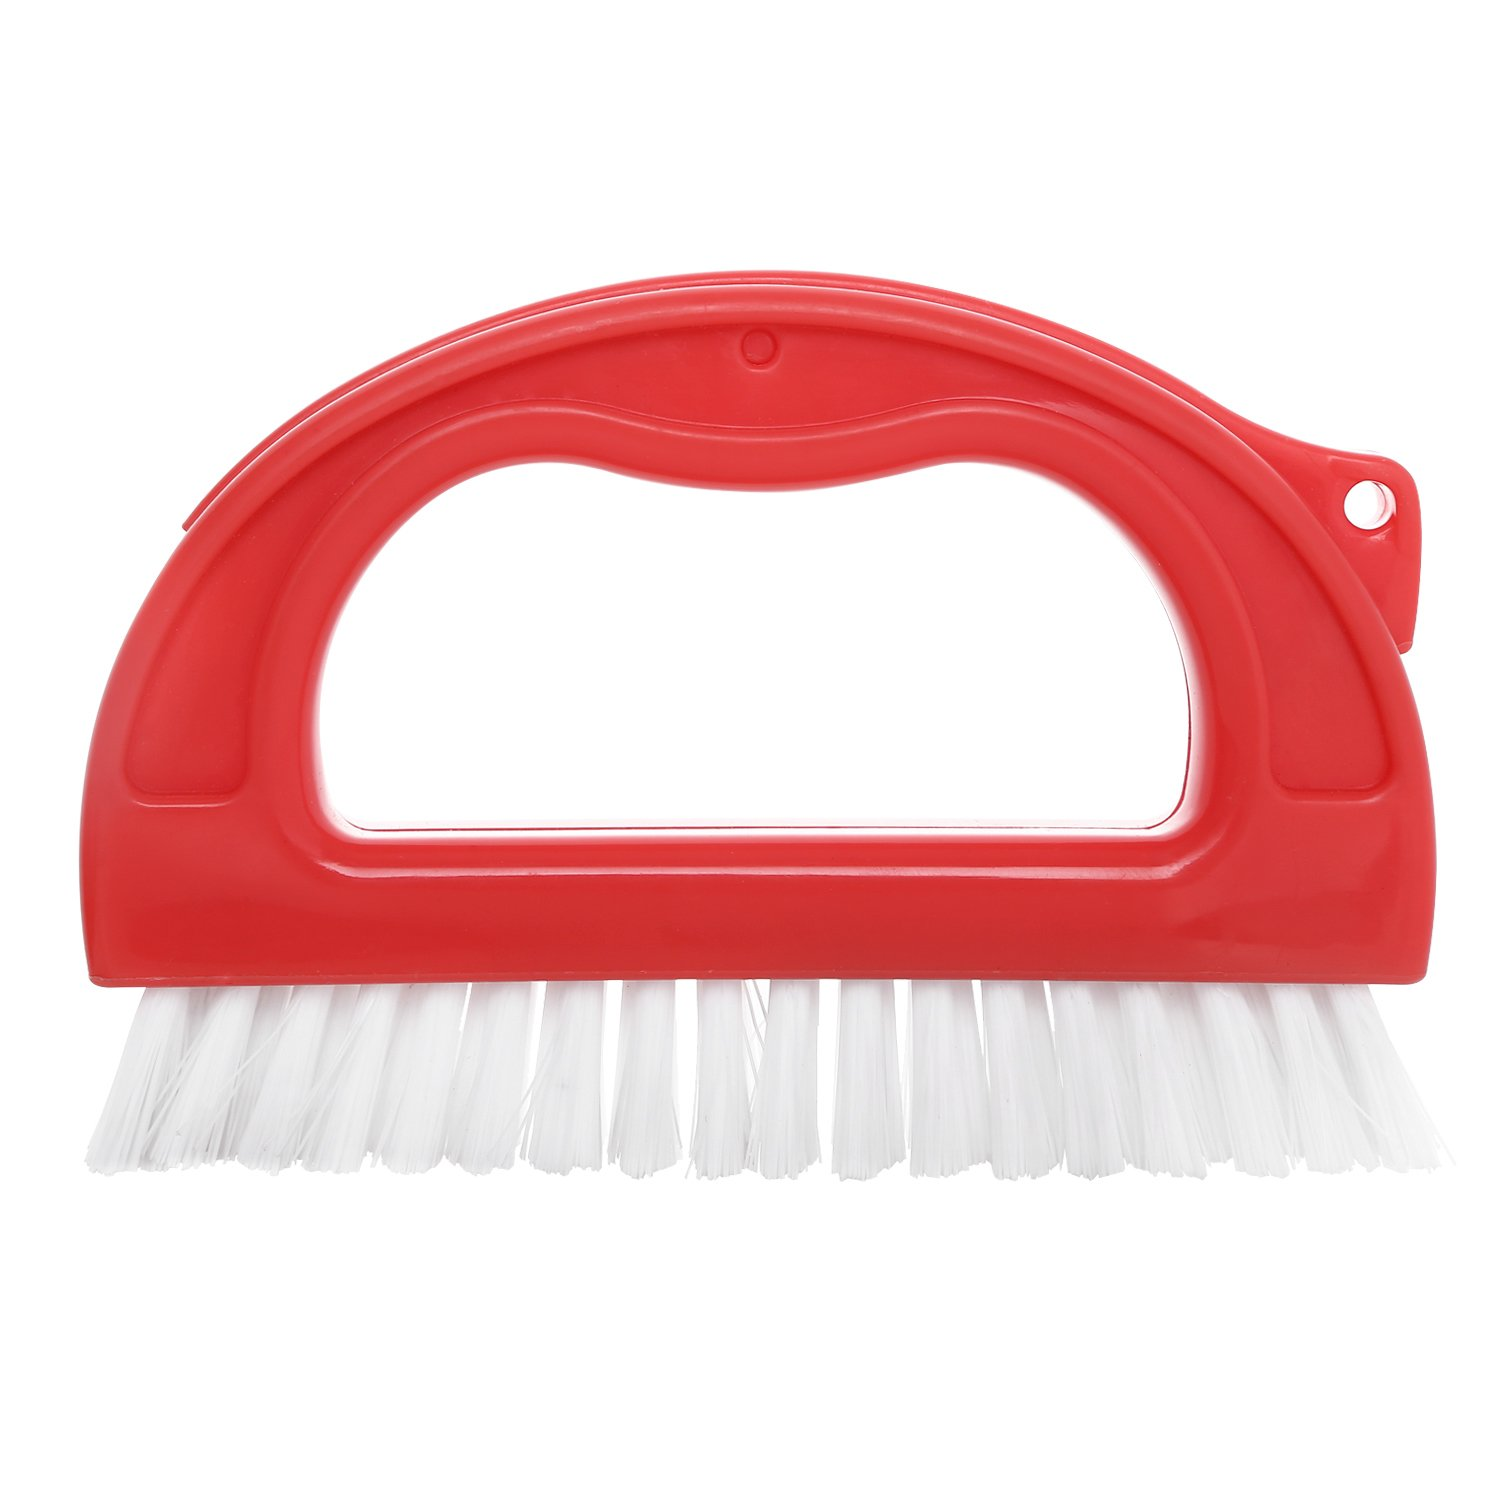 Hiware Grout Cleaner Brush   Tile Joint Cleaning Scrubber Brush With Nylon  Bristles   Great Use For Bathroom, Shower, Floors, Kitchen And Other  Household